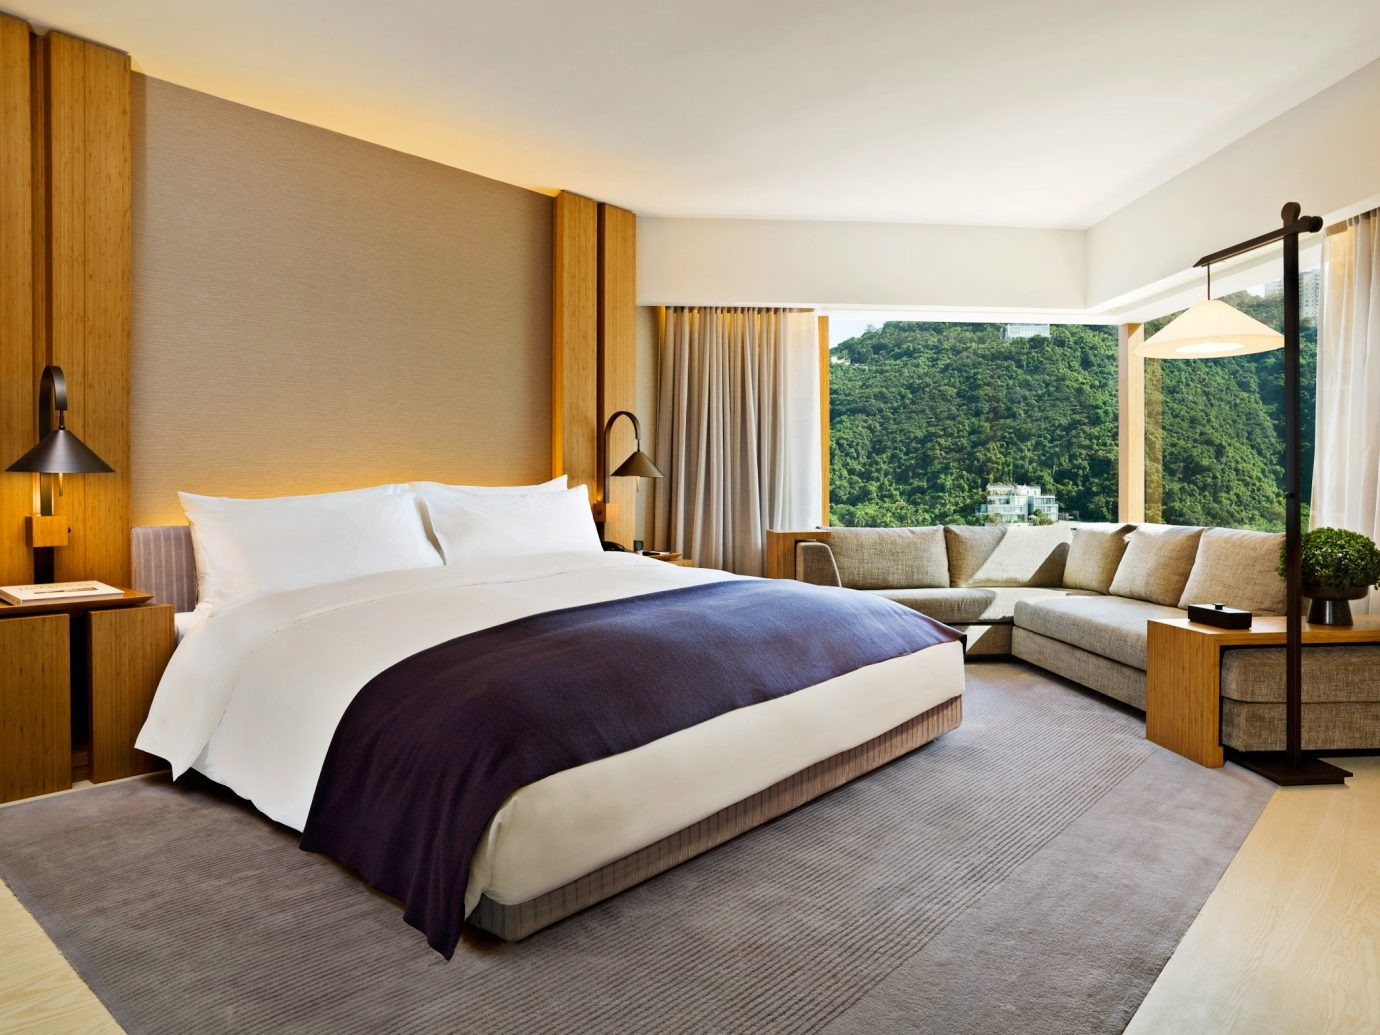 Bedroom Hotels Luxury Modern Mountains Scenic views Suite bed indoor wall room floor hotel property ceiling window estate interior design real estate cottage bed sheet bed frame decorated furniture